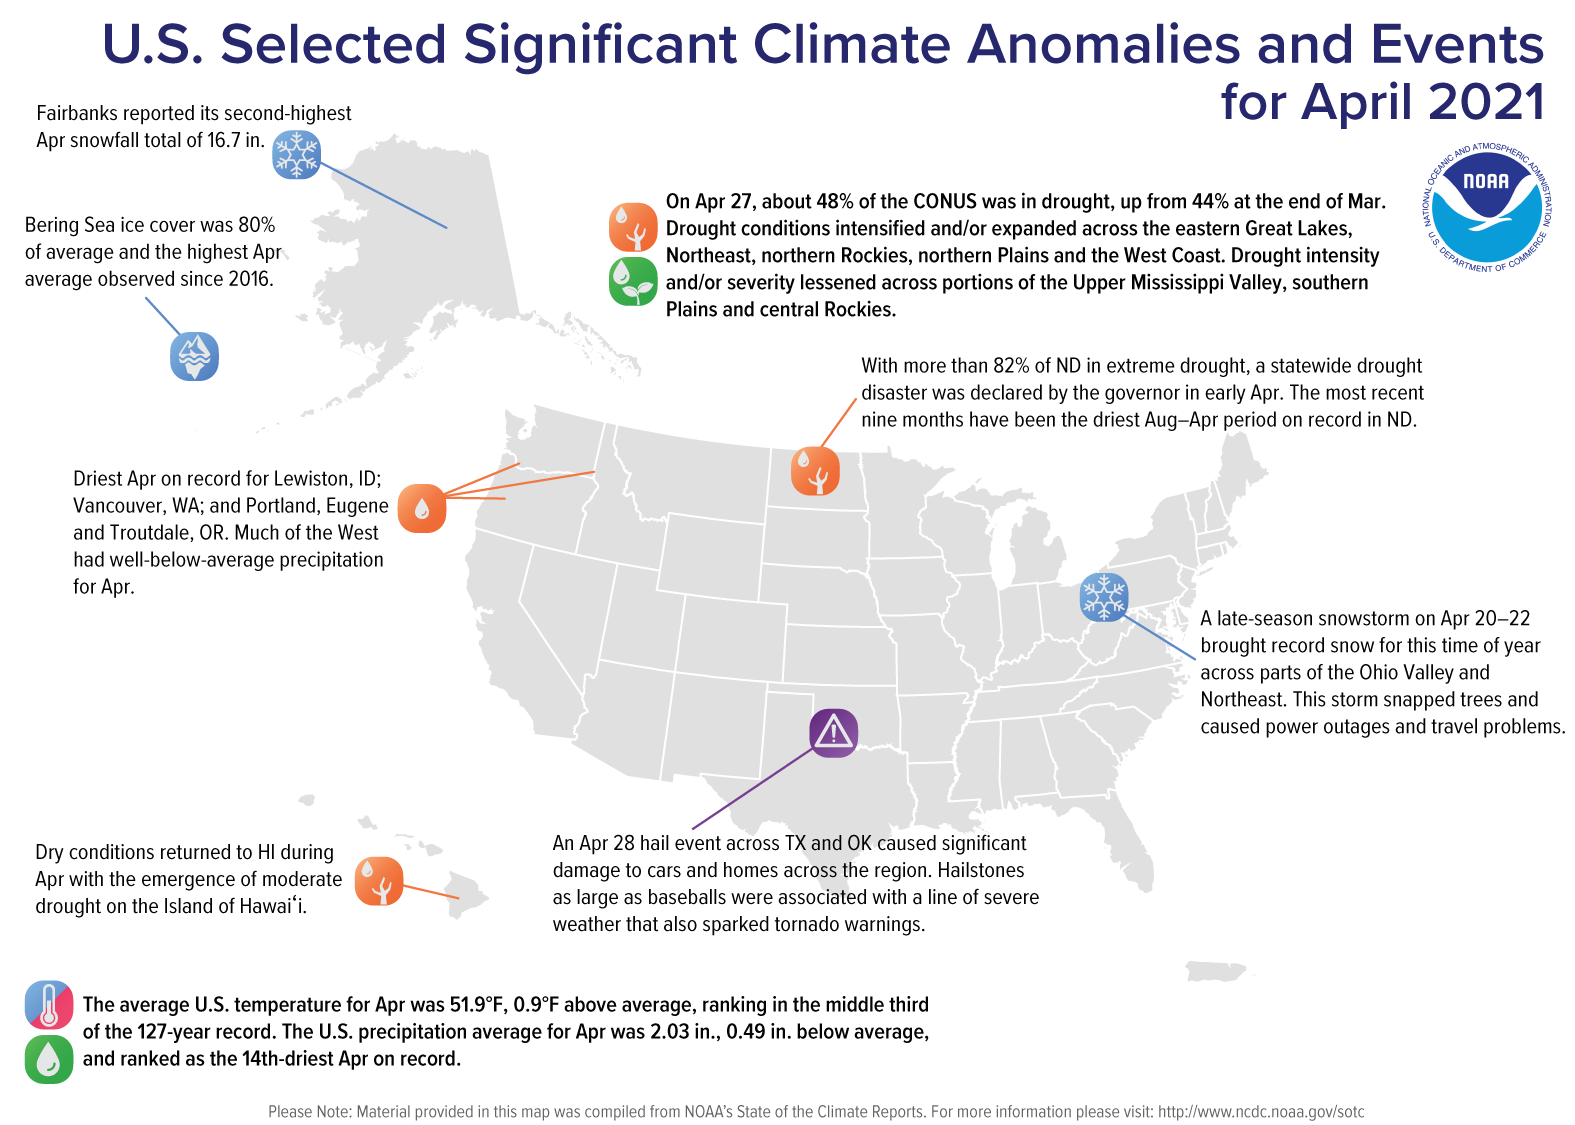 April was Dry and Warm for Most of the Nation